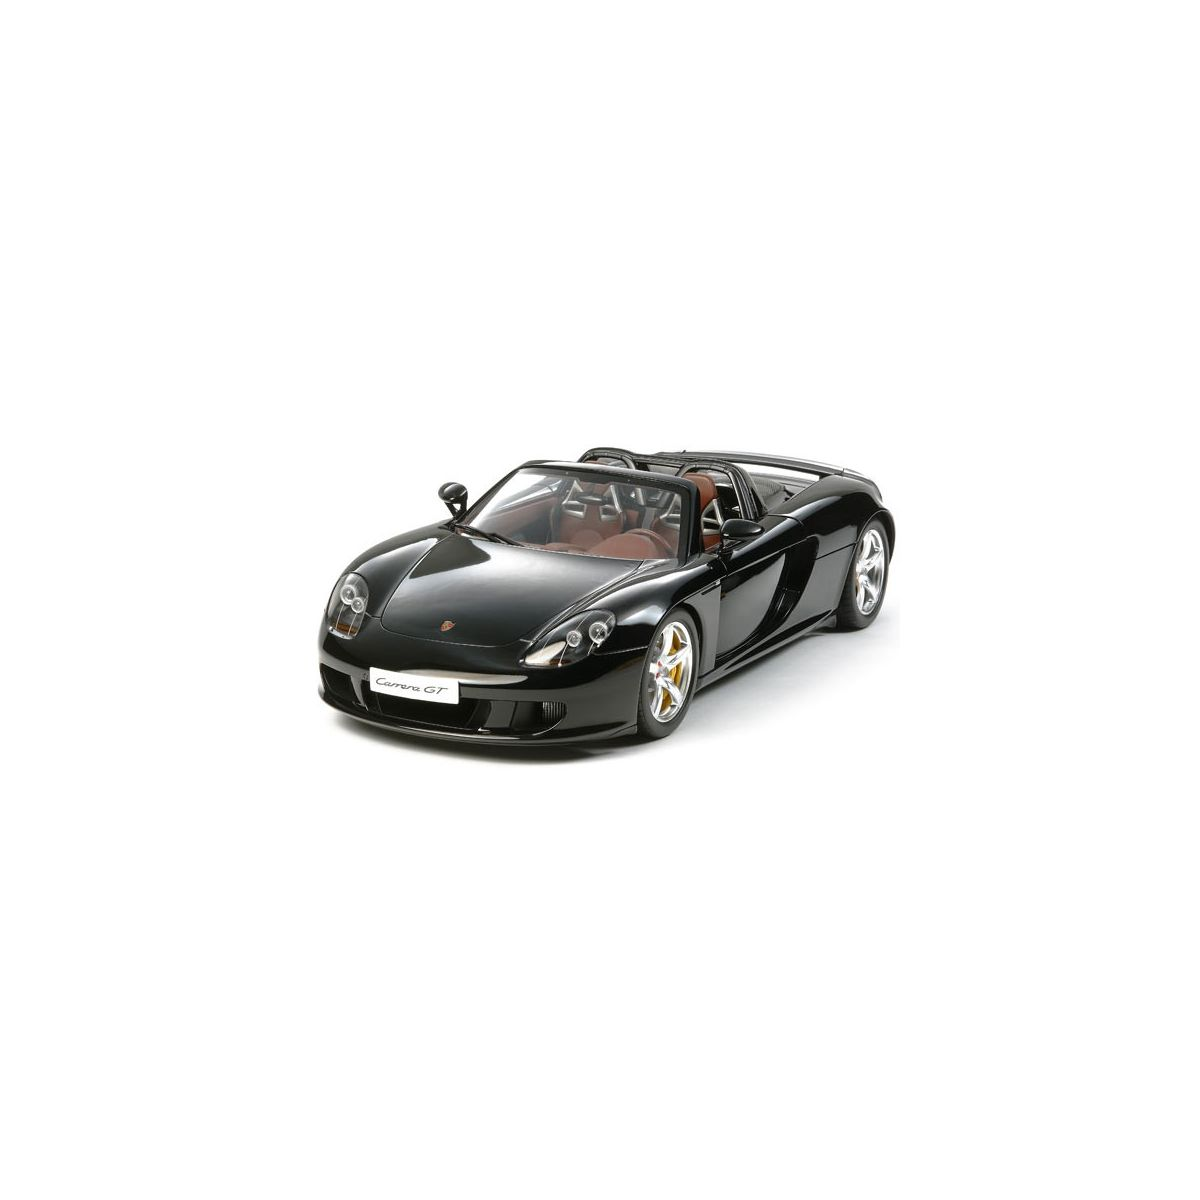 tamiya 12050 porsche carrera gt 1 12. Black Bedroom Furniture Sets. Home Design Ideas